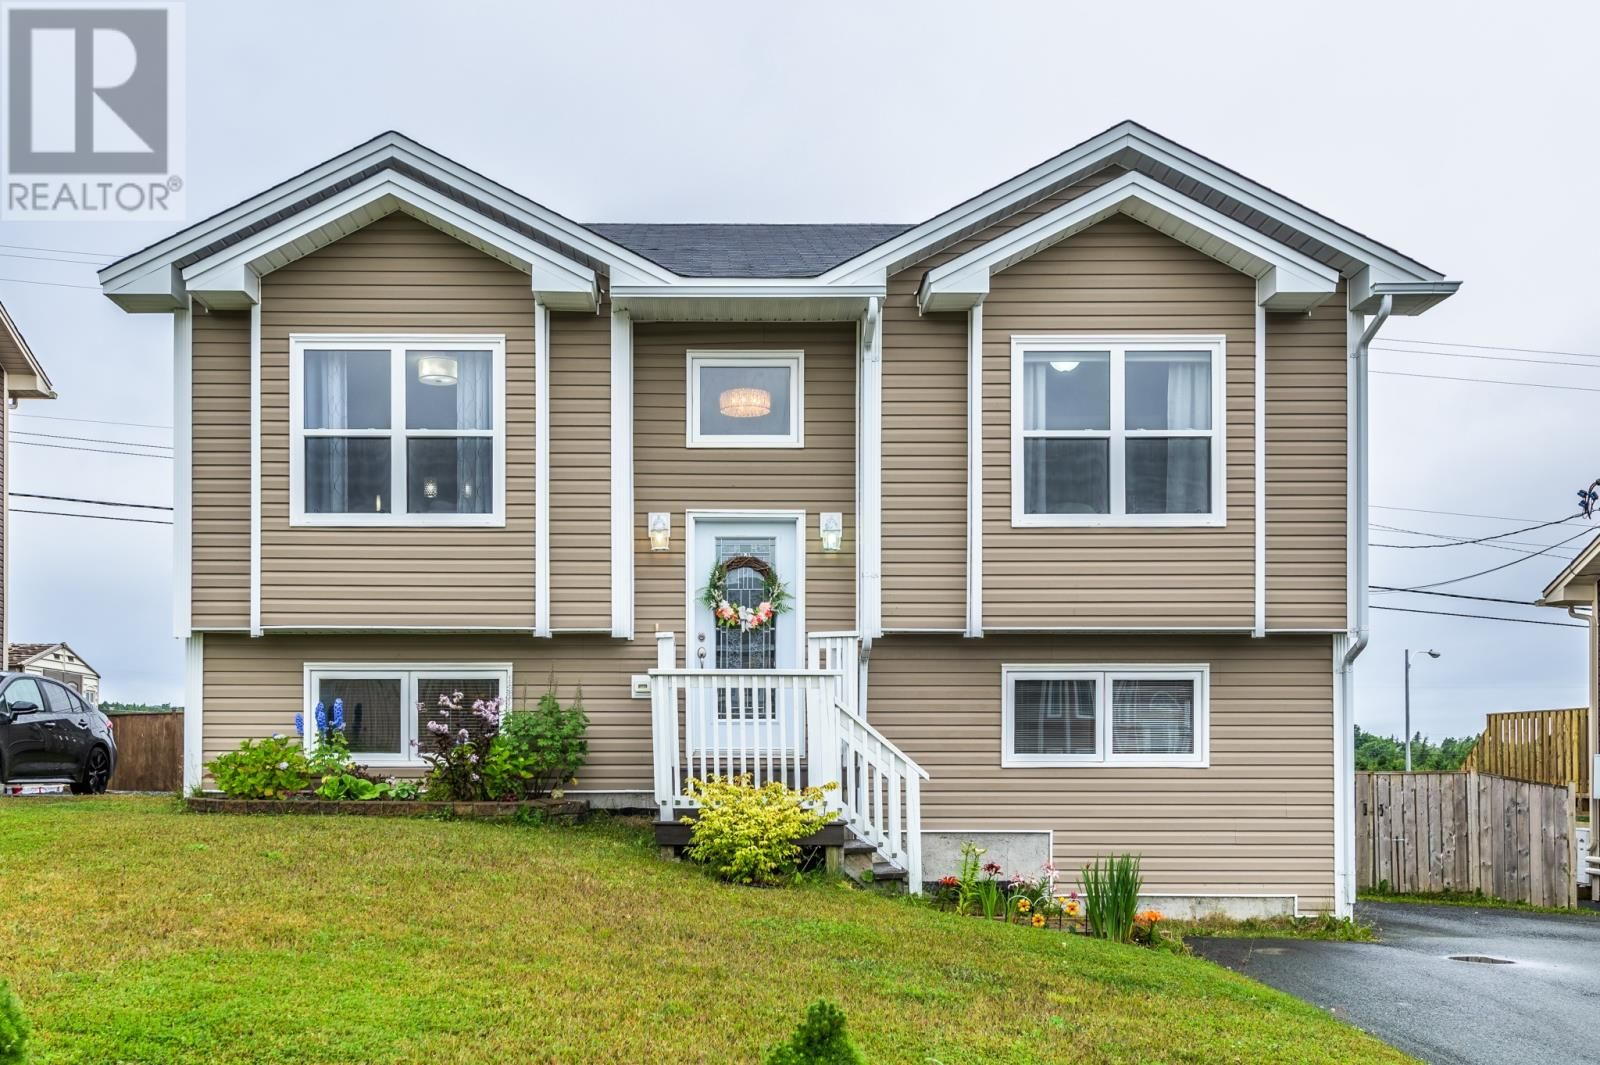 Main Photo: 38 Cole Thomas Drive in Conception Bay South: House for sale : MLS®# 1233782